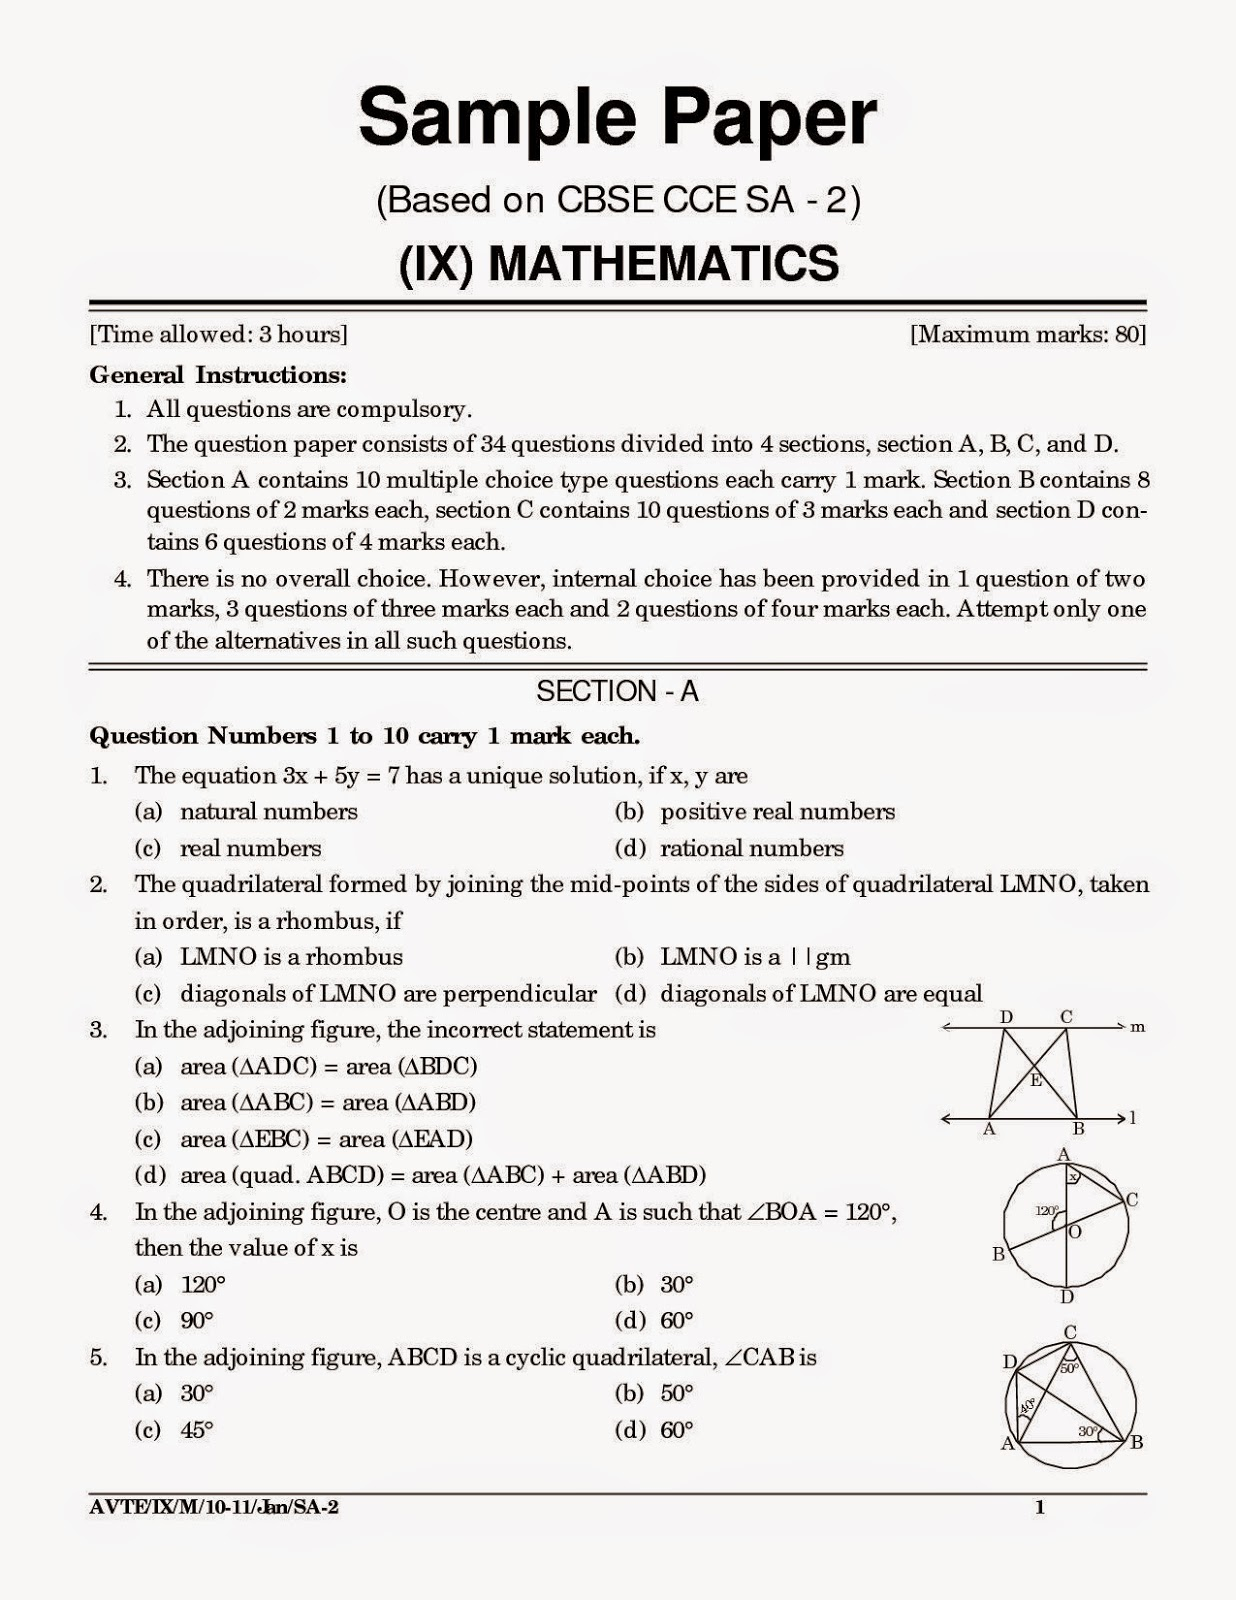 002 Essay Example Cbsesamplepapersforclass10mathematicsandscience Jpg Topics For Year Archaicawful 9 Questions Grade Olds Igcse Full